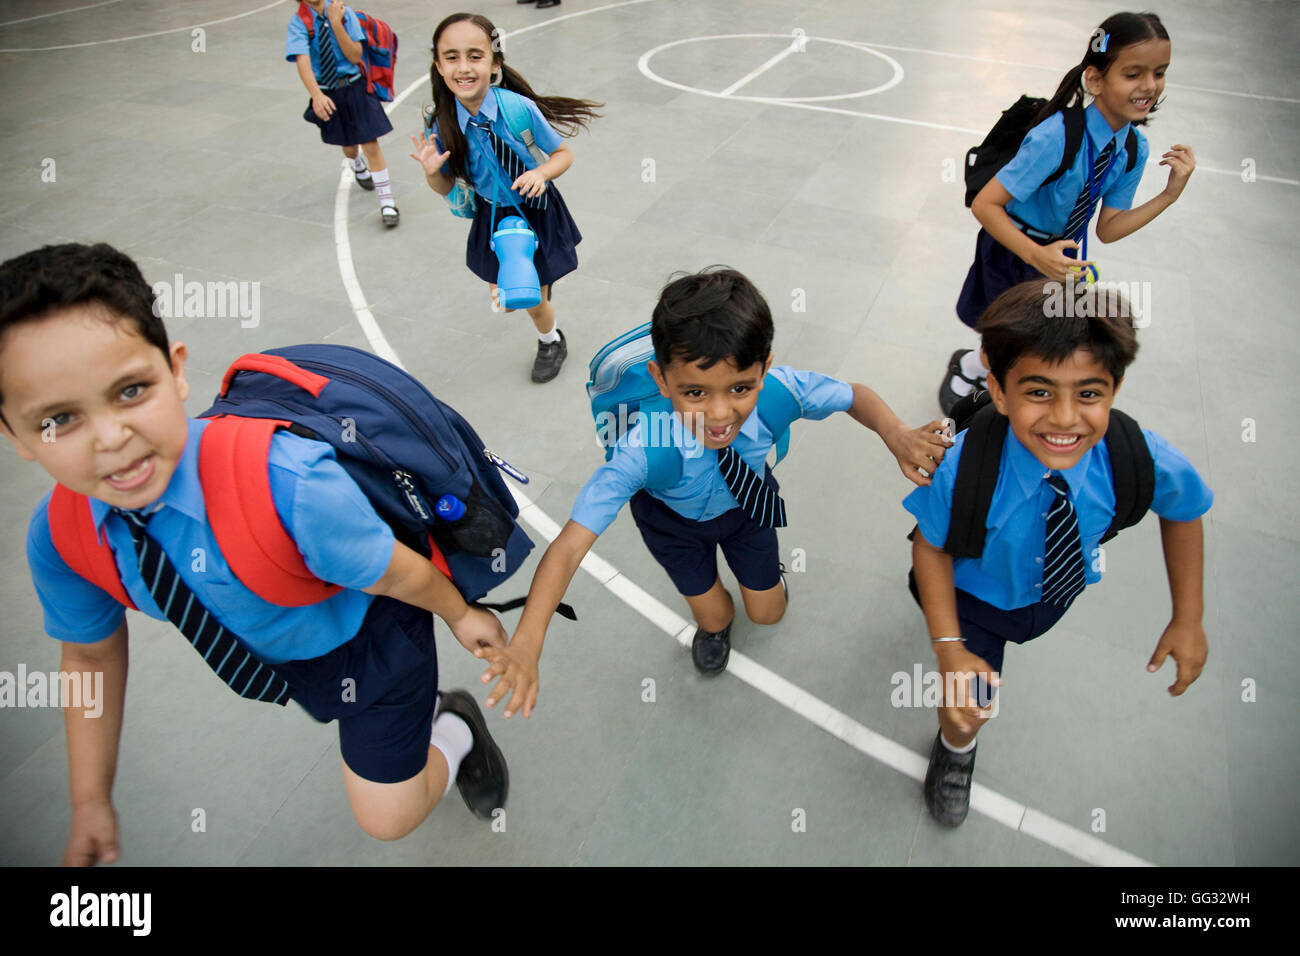 School children running - Stock Image